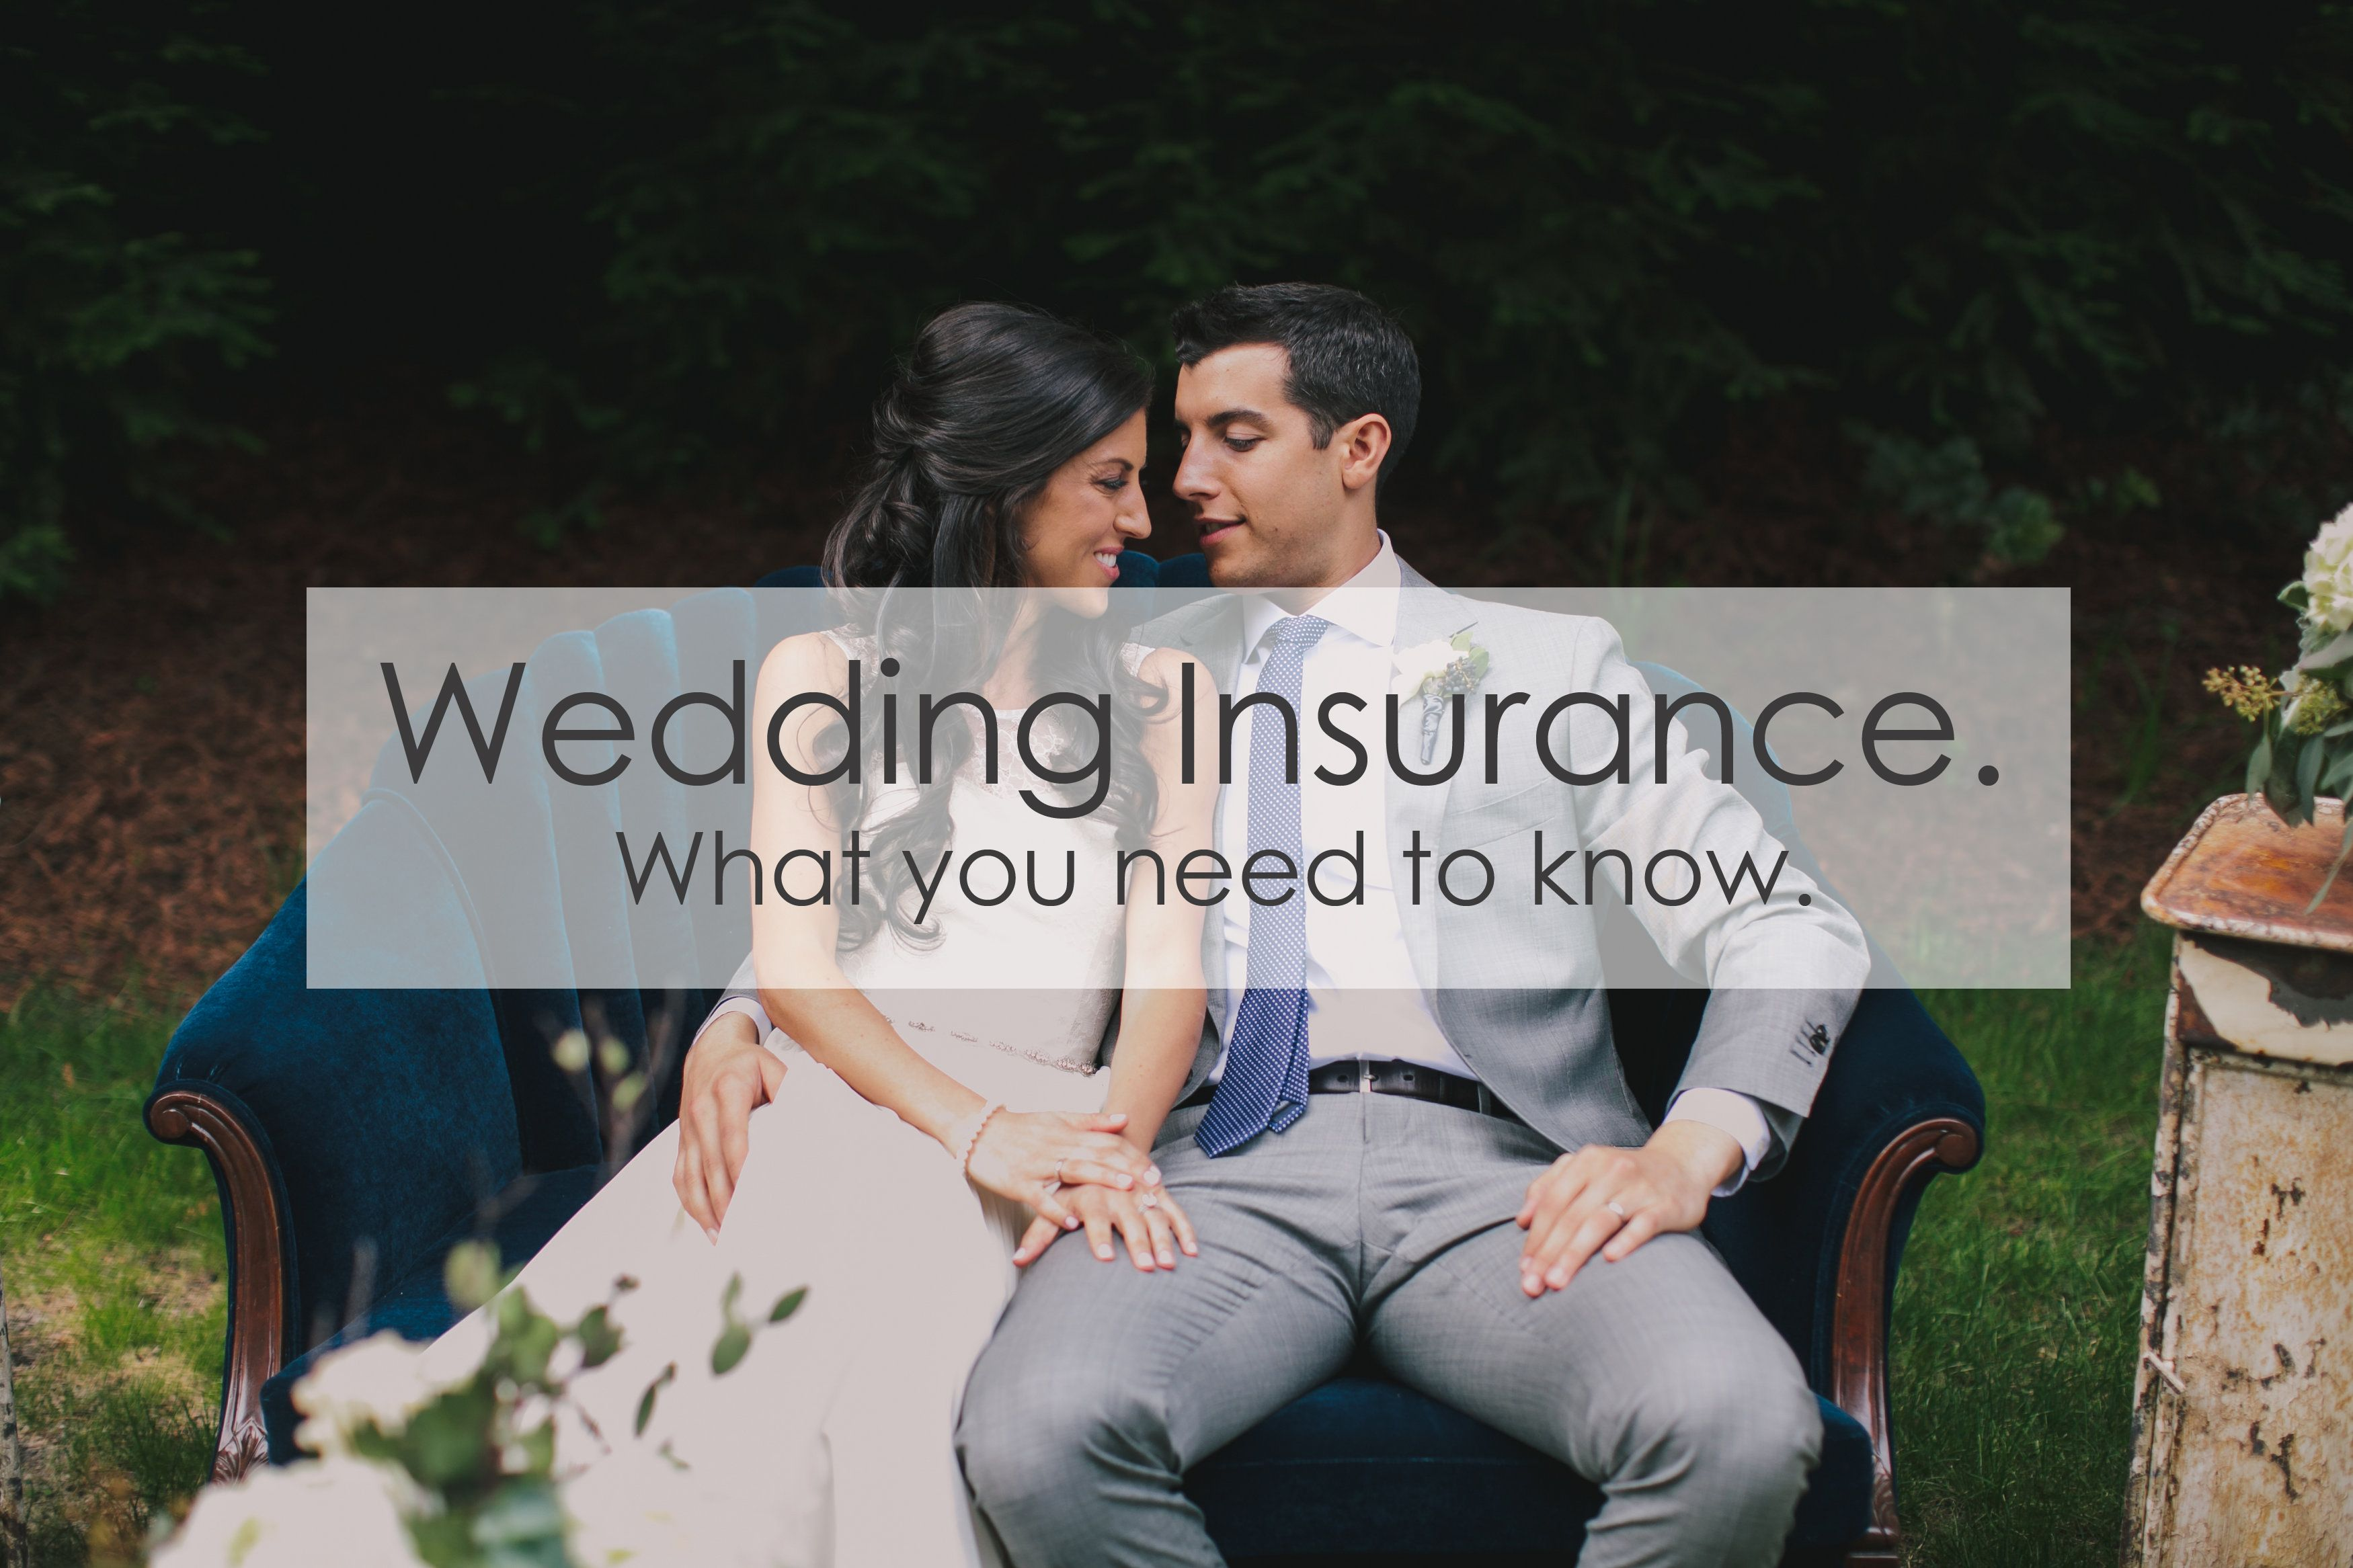 Wedding Insurance Are You Covered Wedding Insurance Wedding Alcohol Affordable Wedding Venues